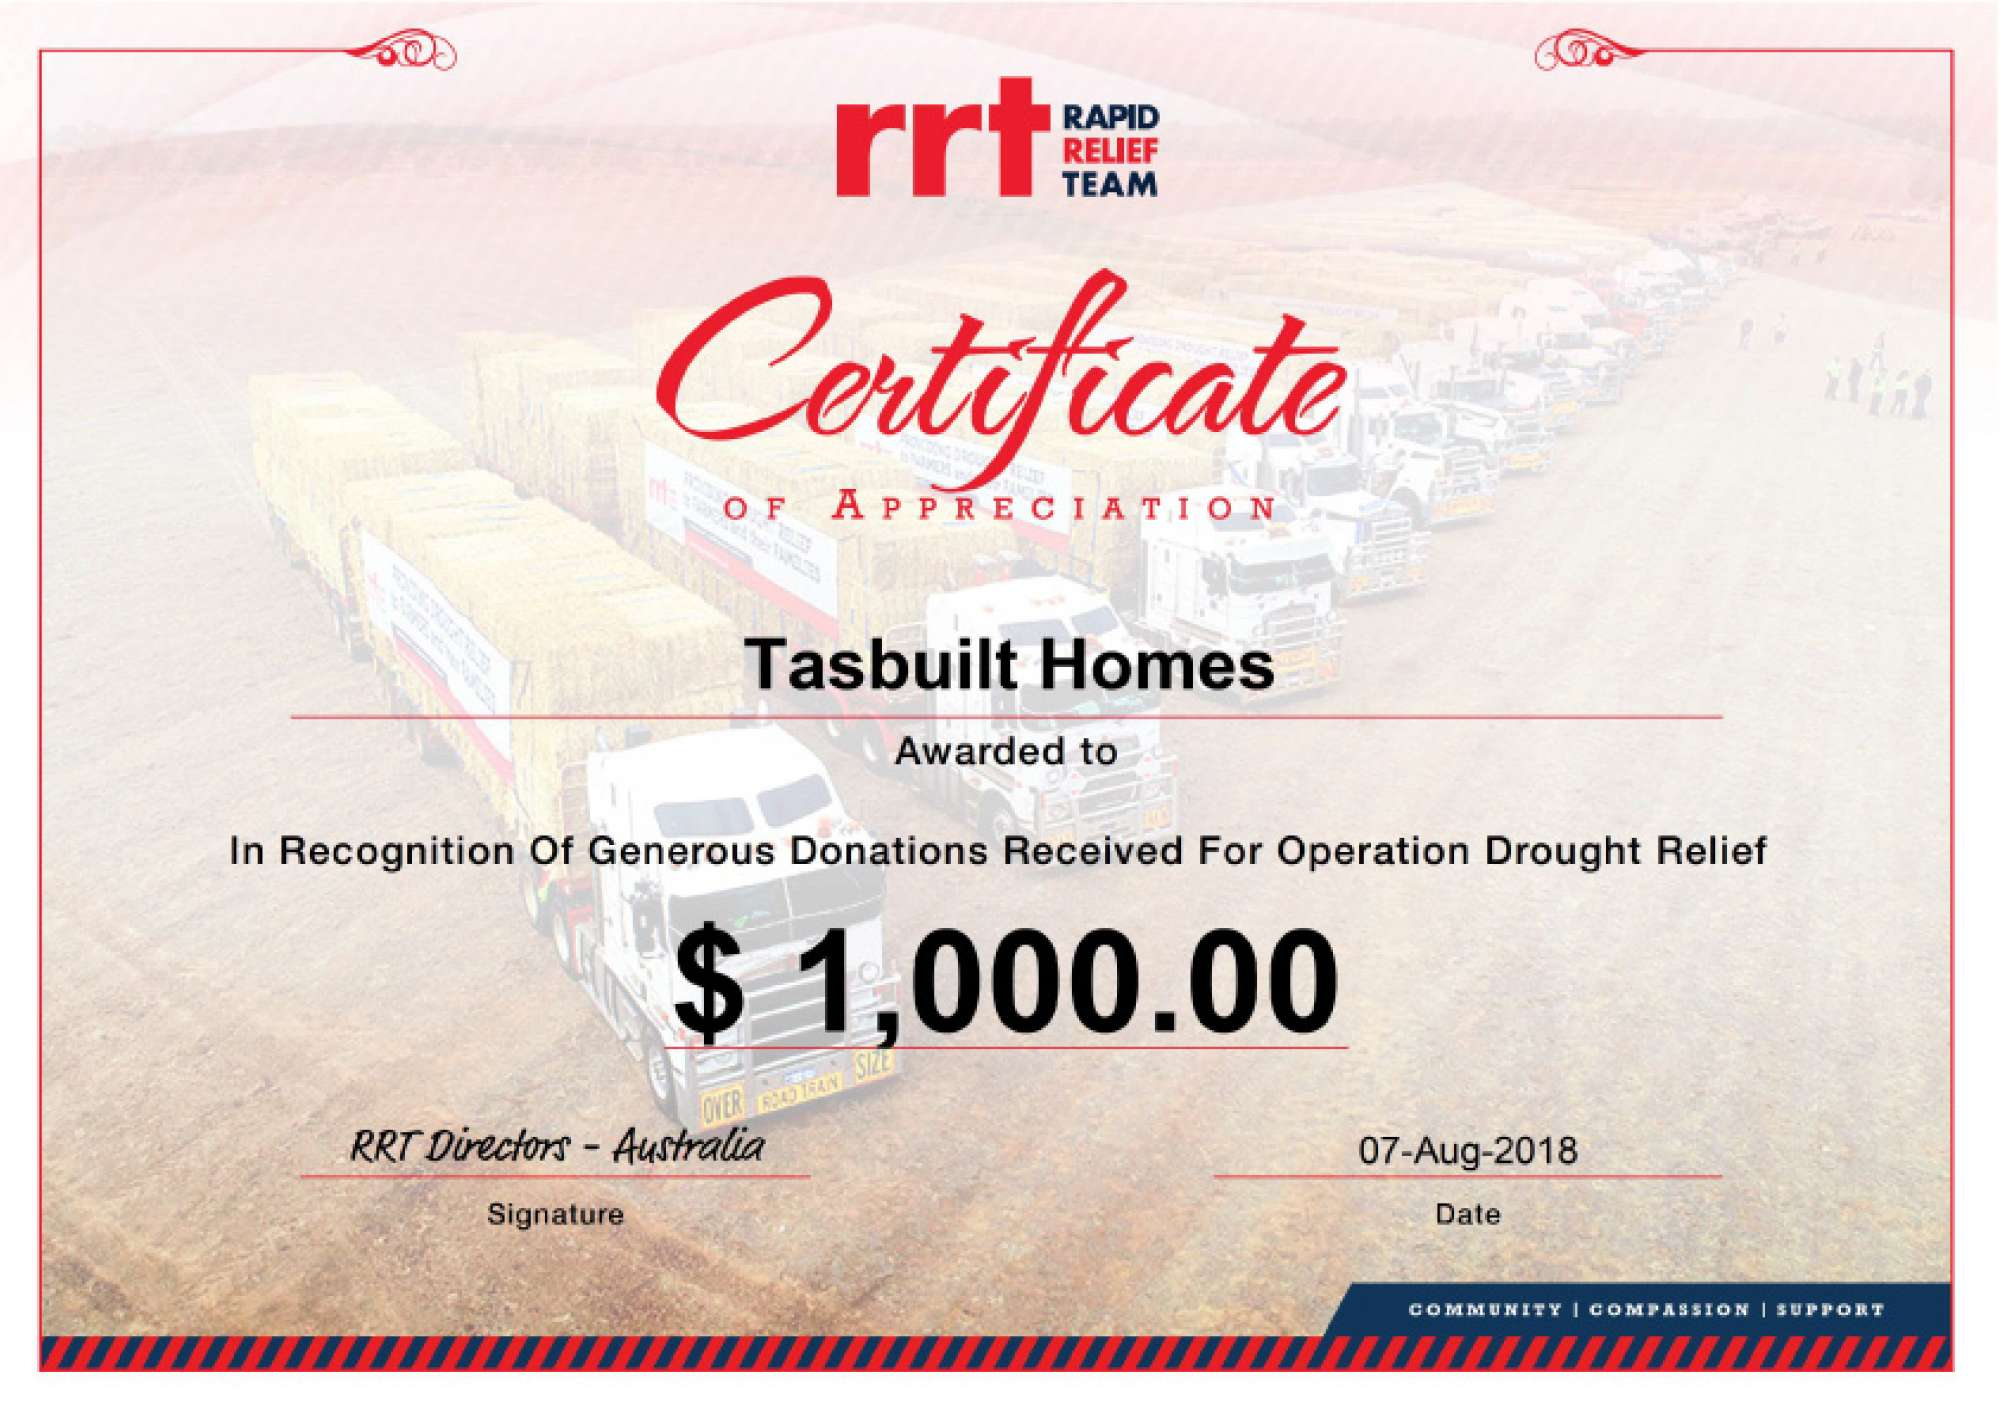 Rrt-drought-relief-certificate-tasbuilt-homes